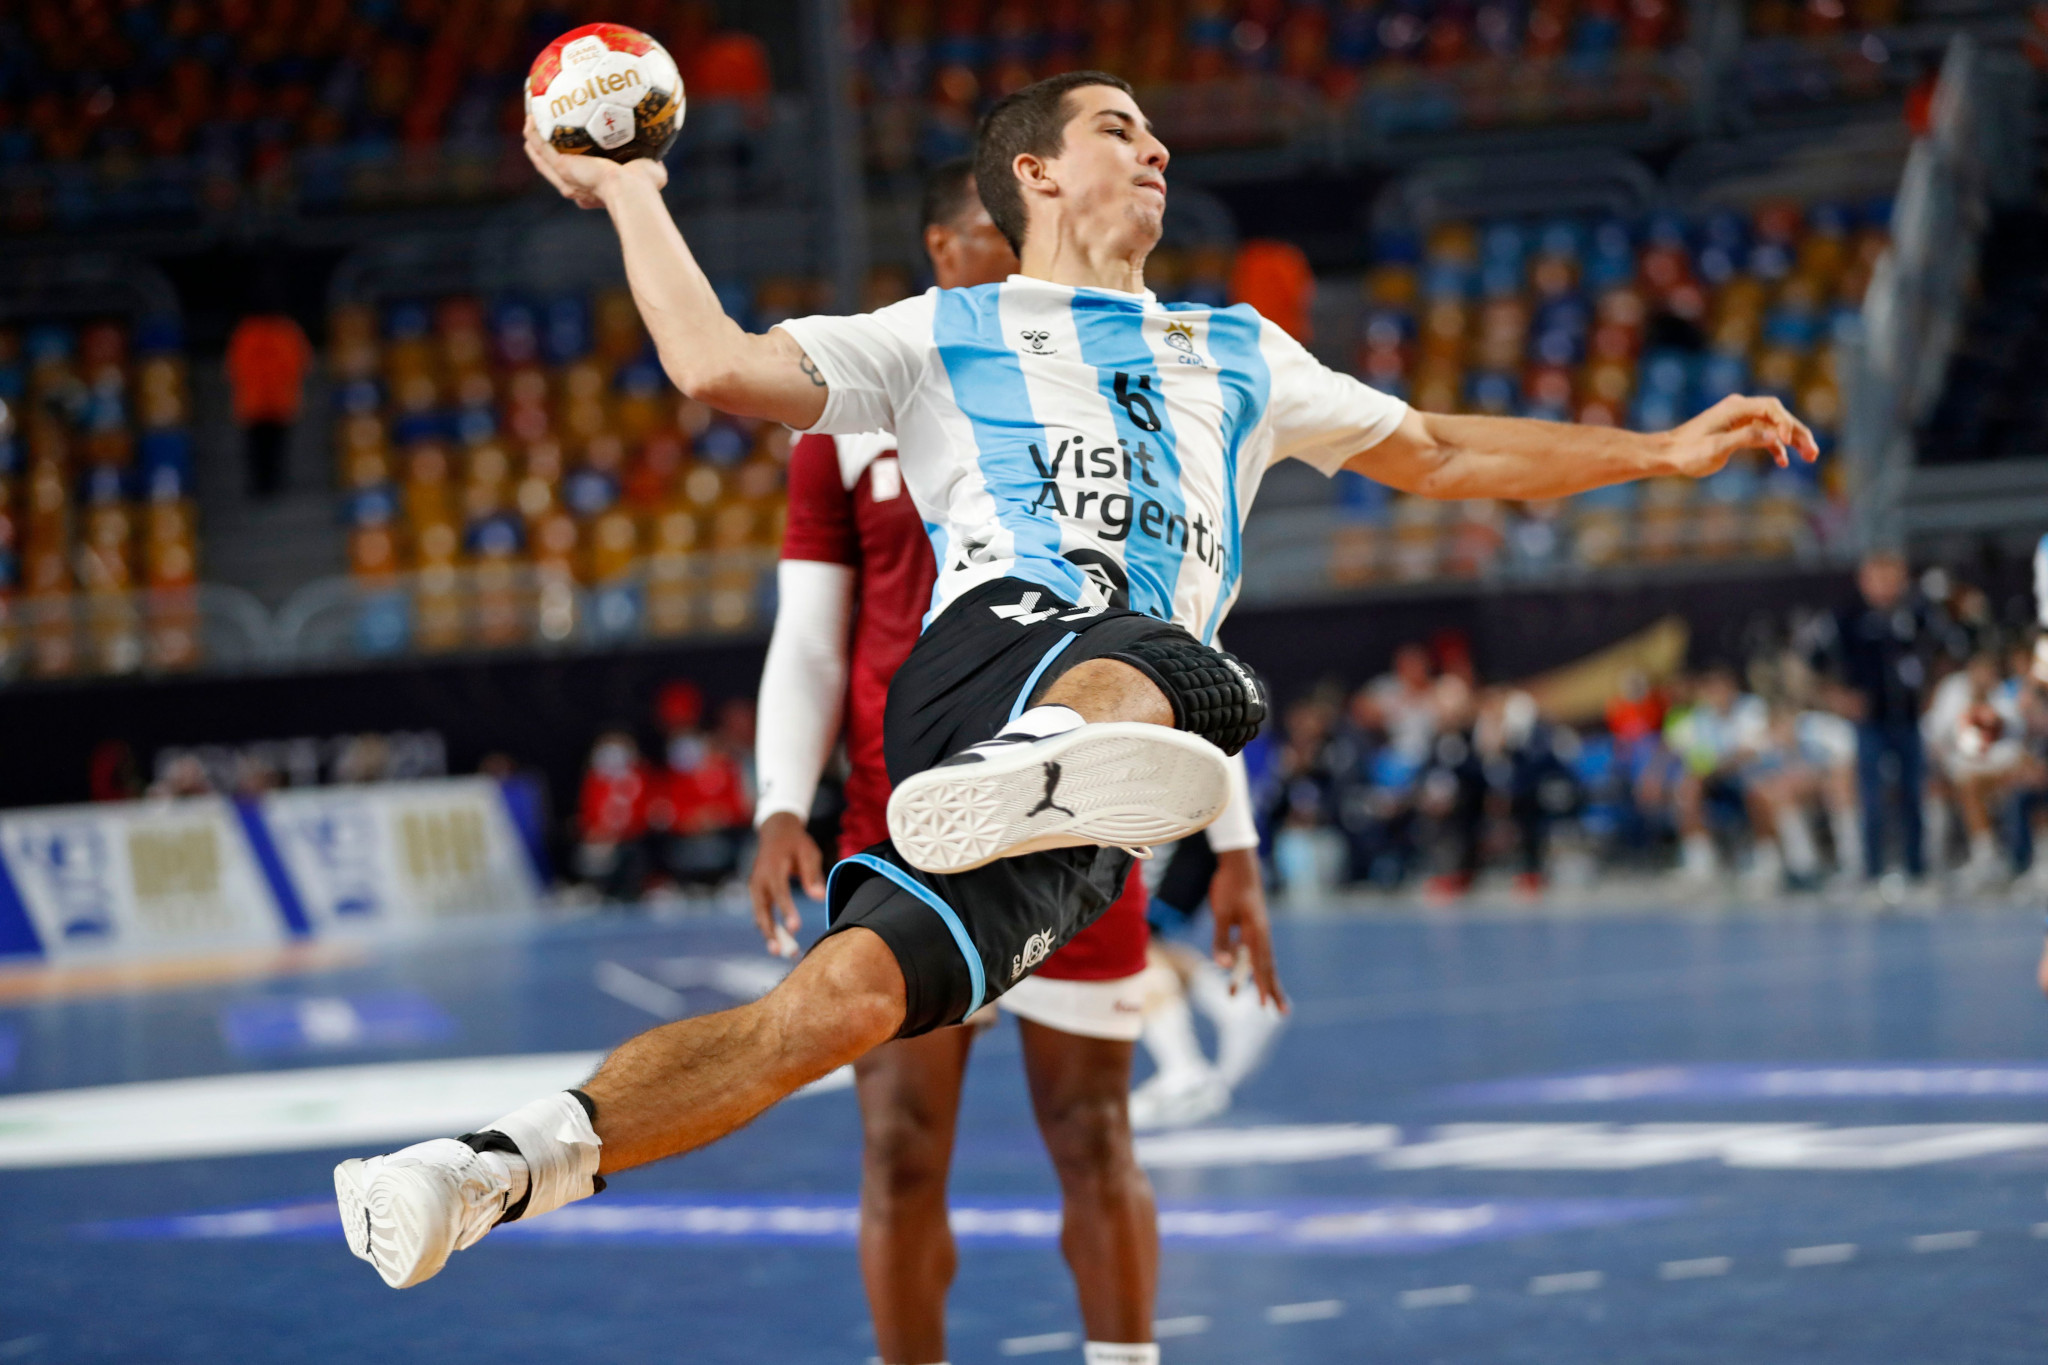 Argentina will be in the men's handball Group A along with Spain and Germany ©Getty Images